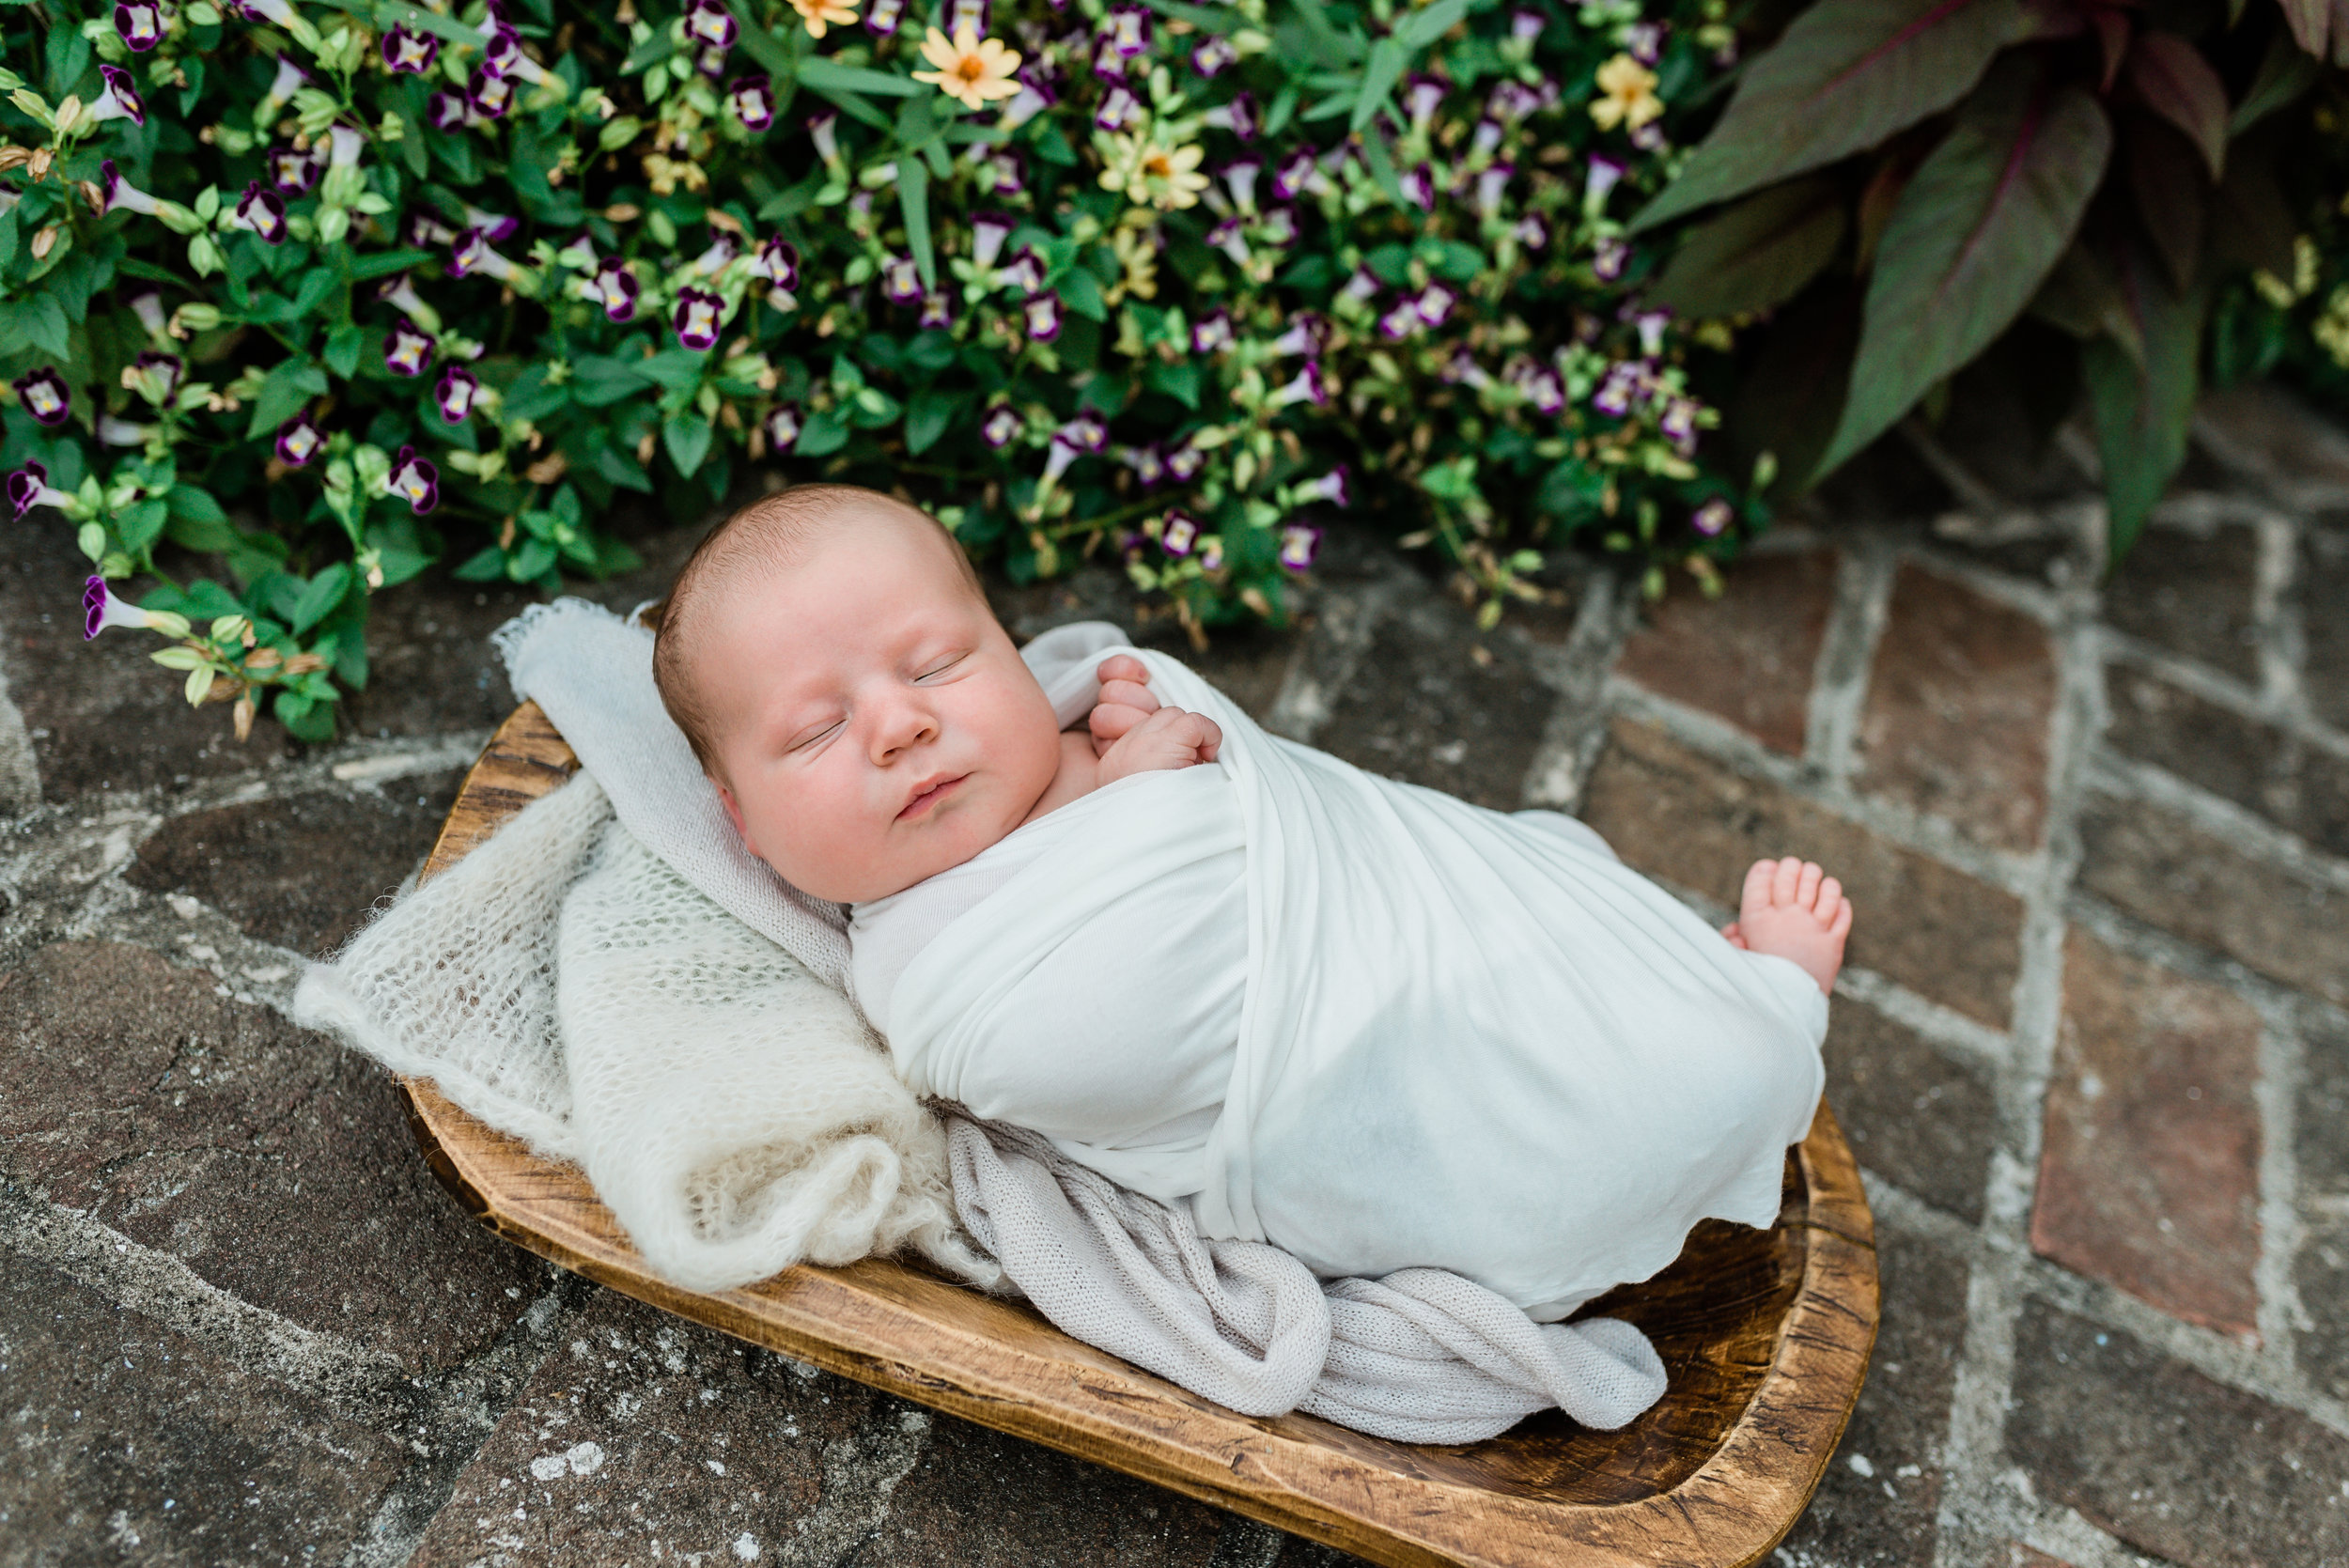 Charleston-Outdoor-Newborn-Photographer-Following-Seas-Photography-6192 copy.jpg